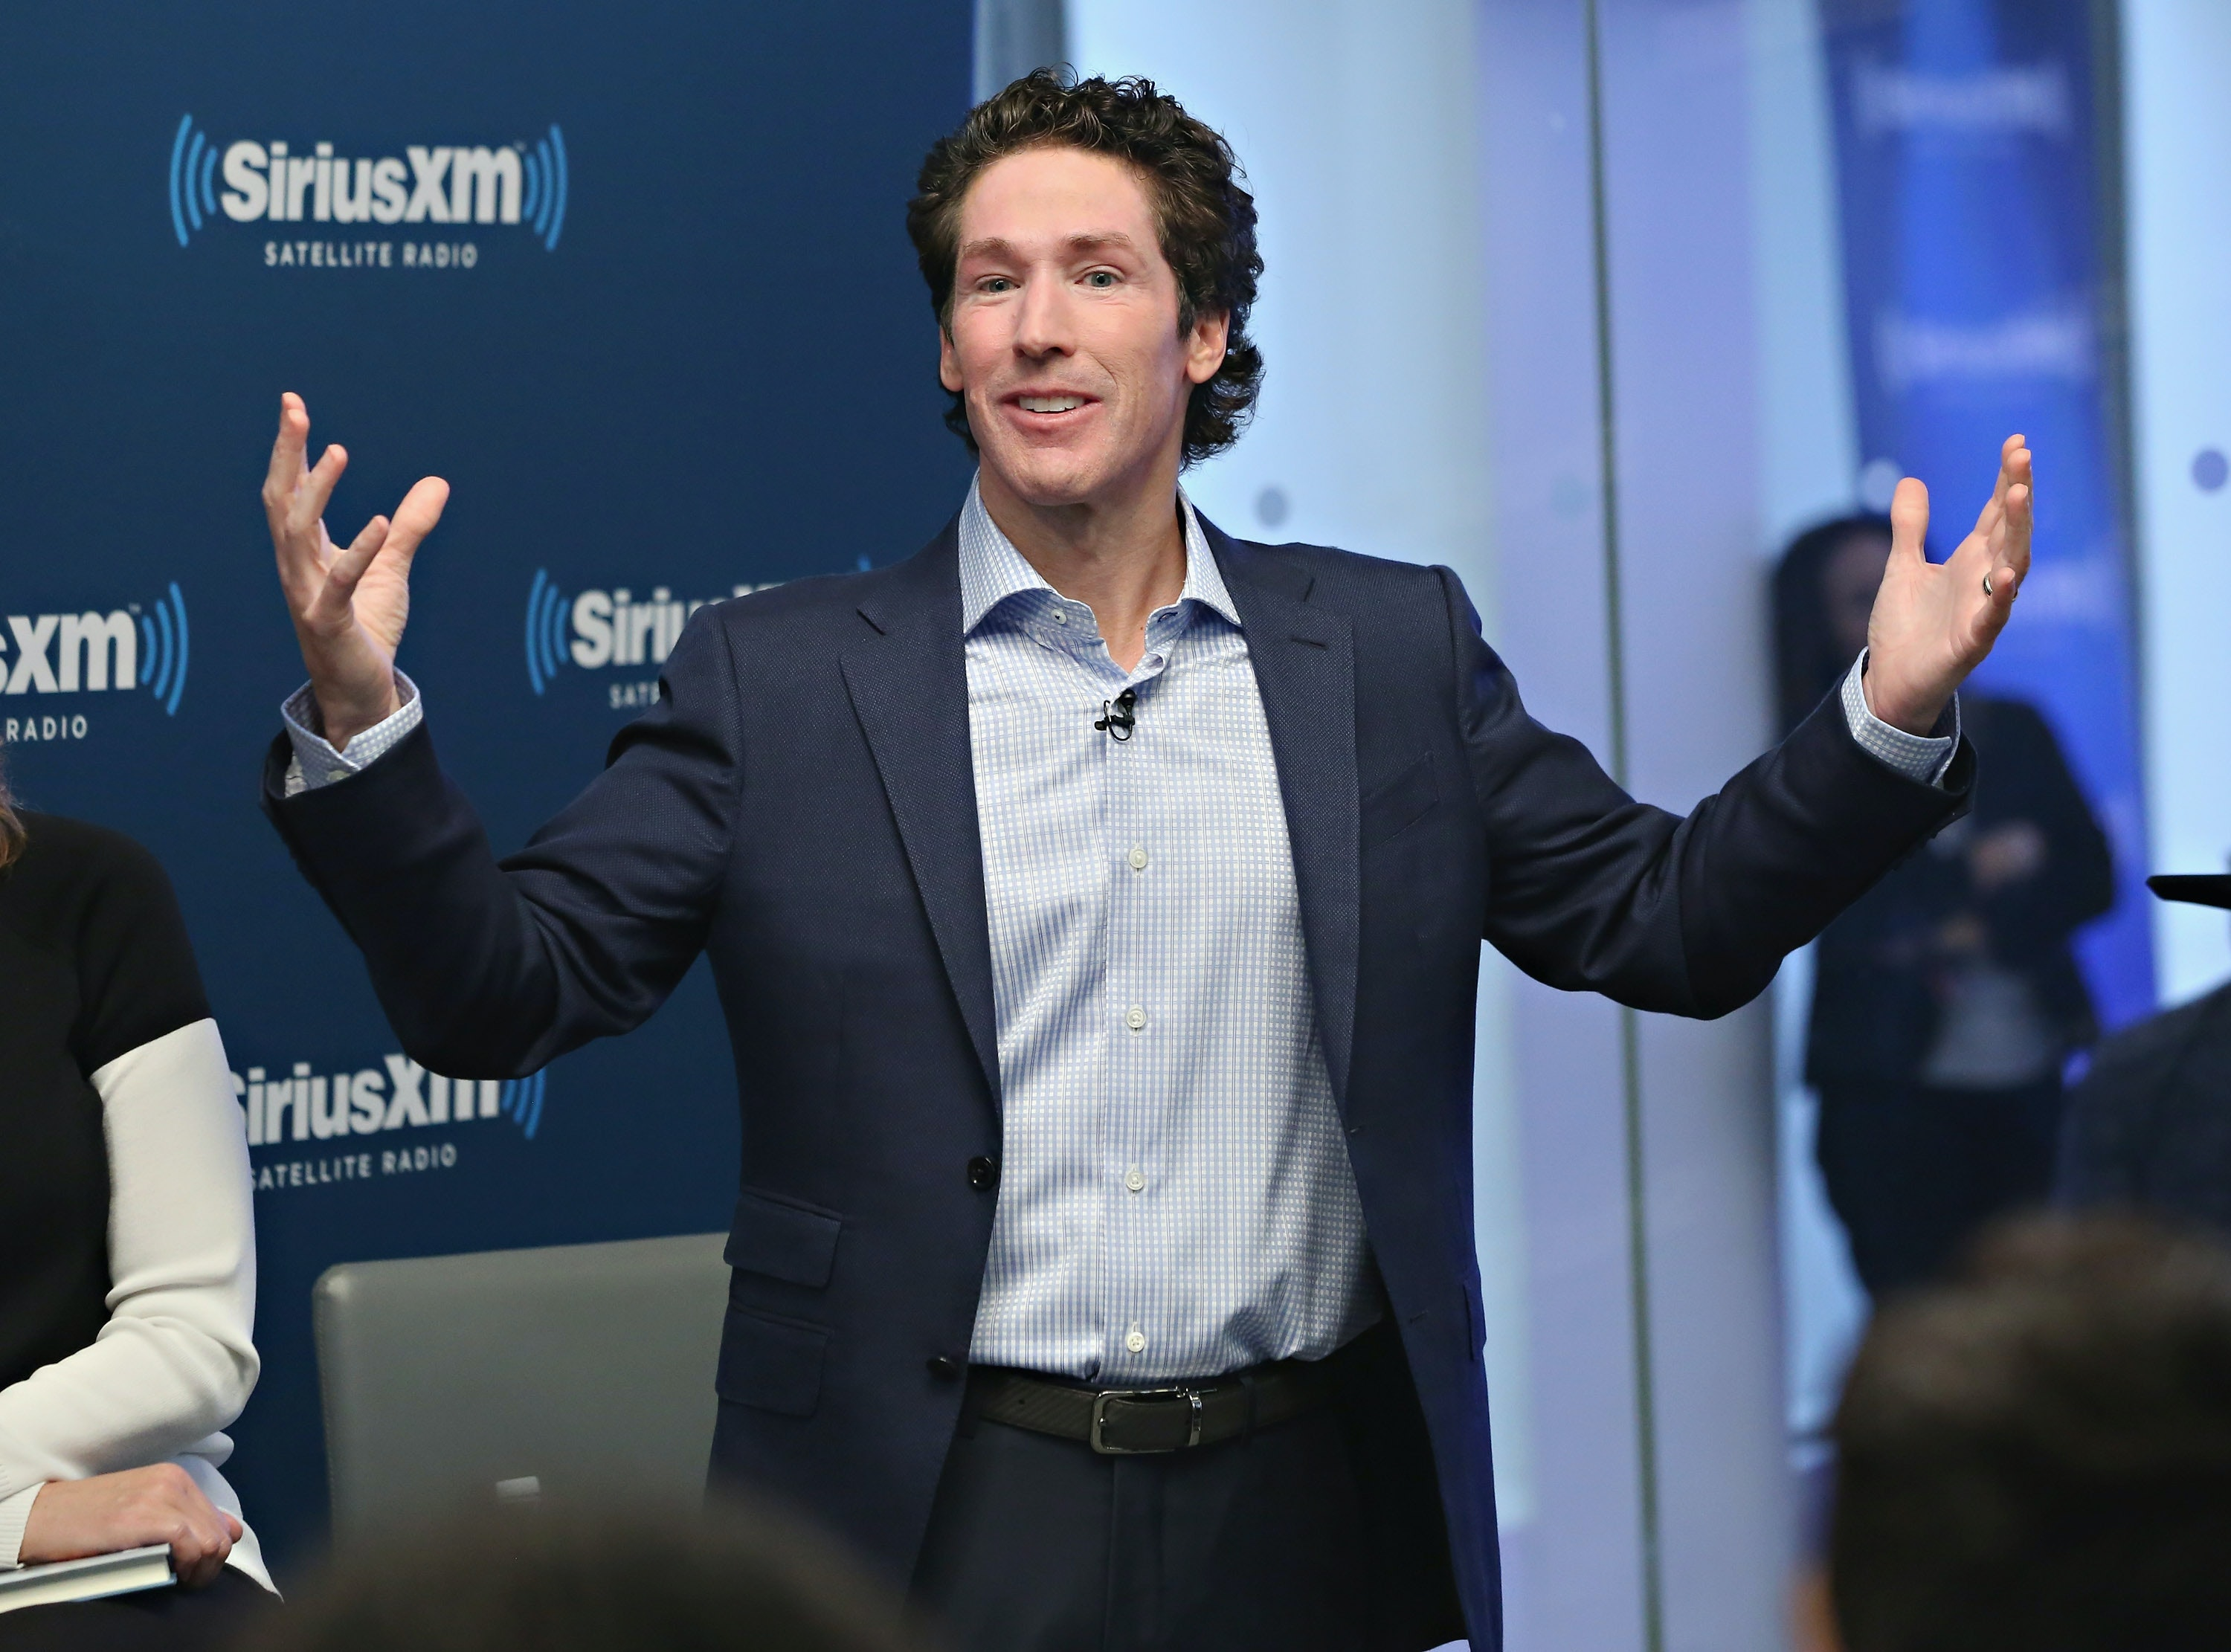 Joel Osteen 1st Sunday Service Since Backlash ... 'Let Me Clarify Some Things'